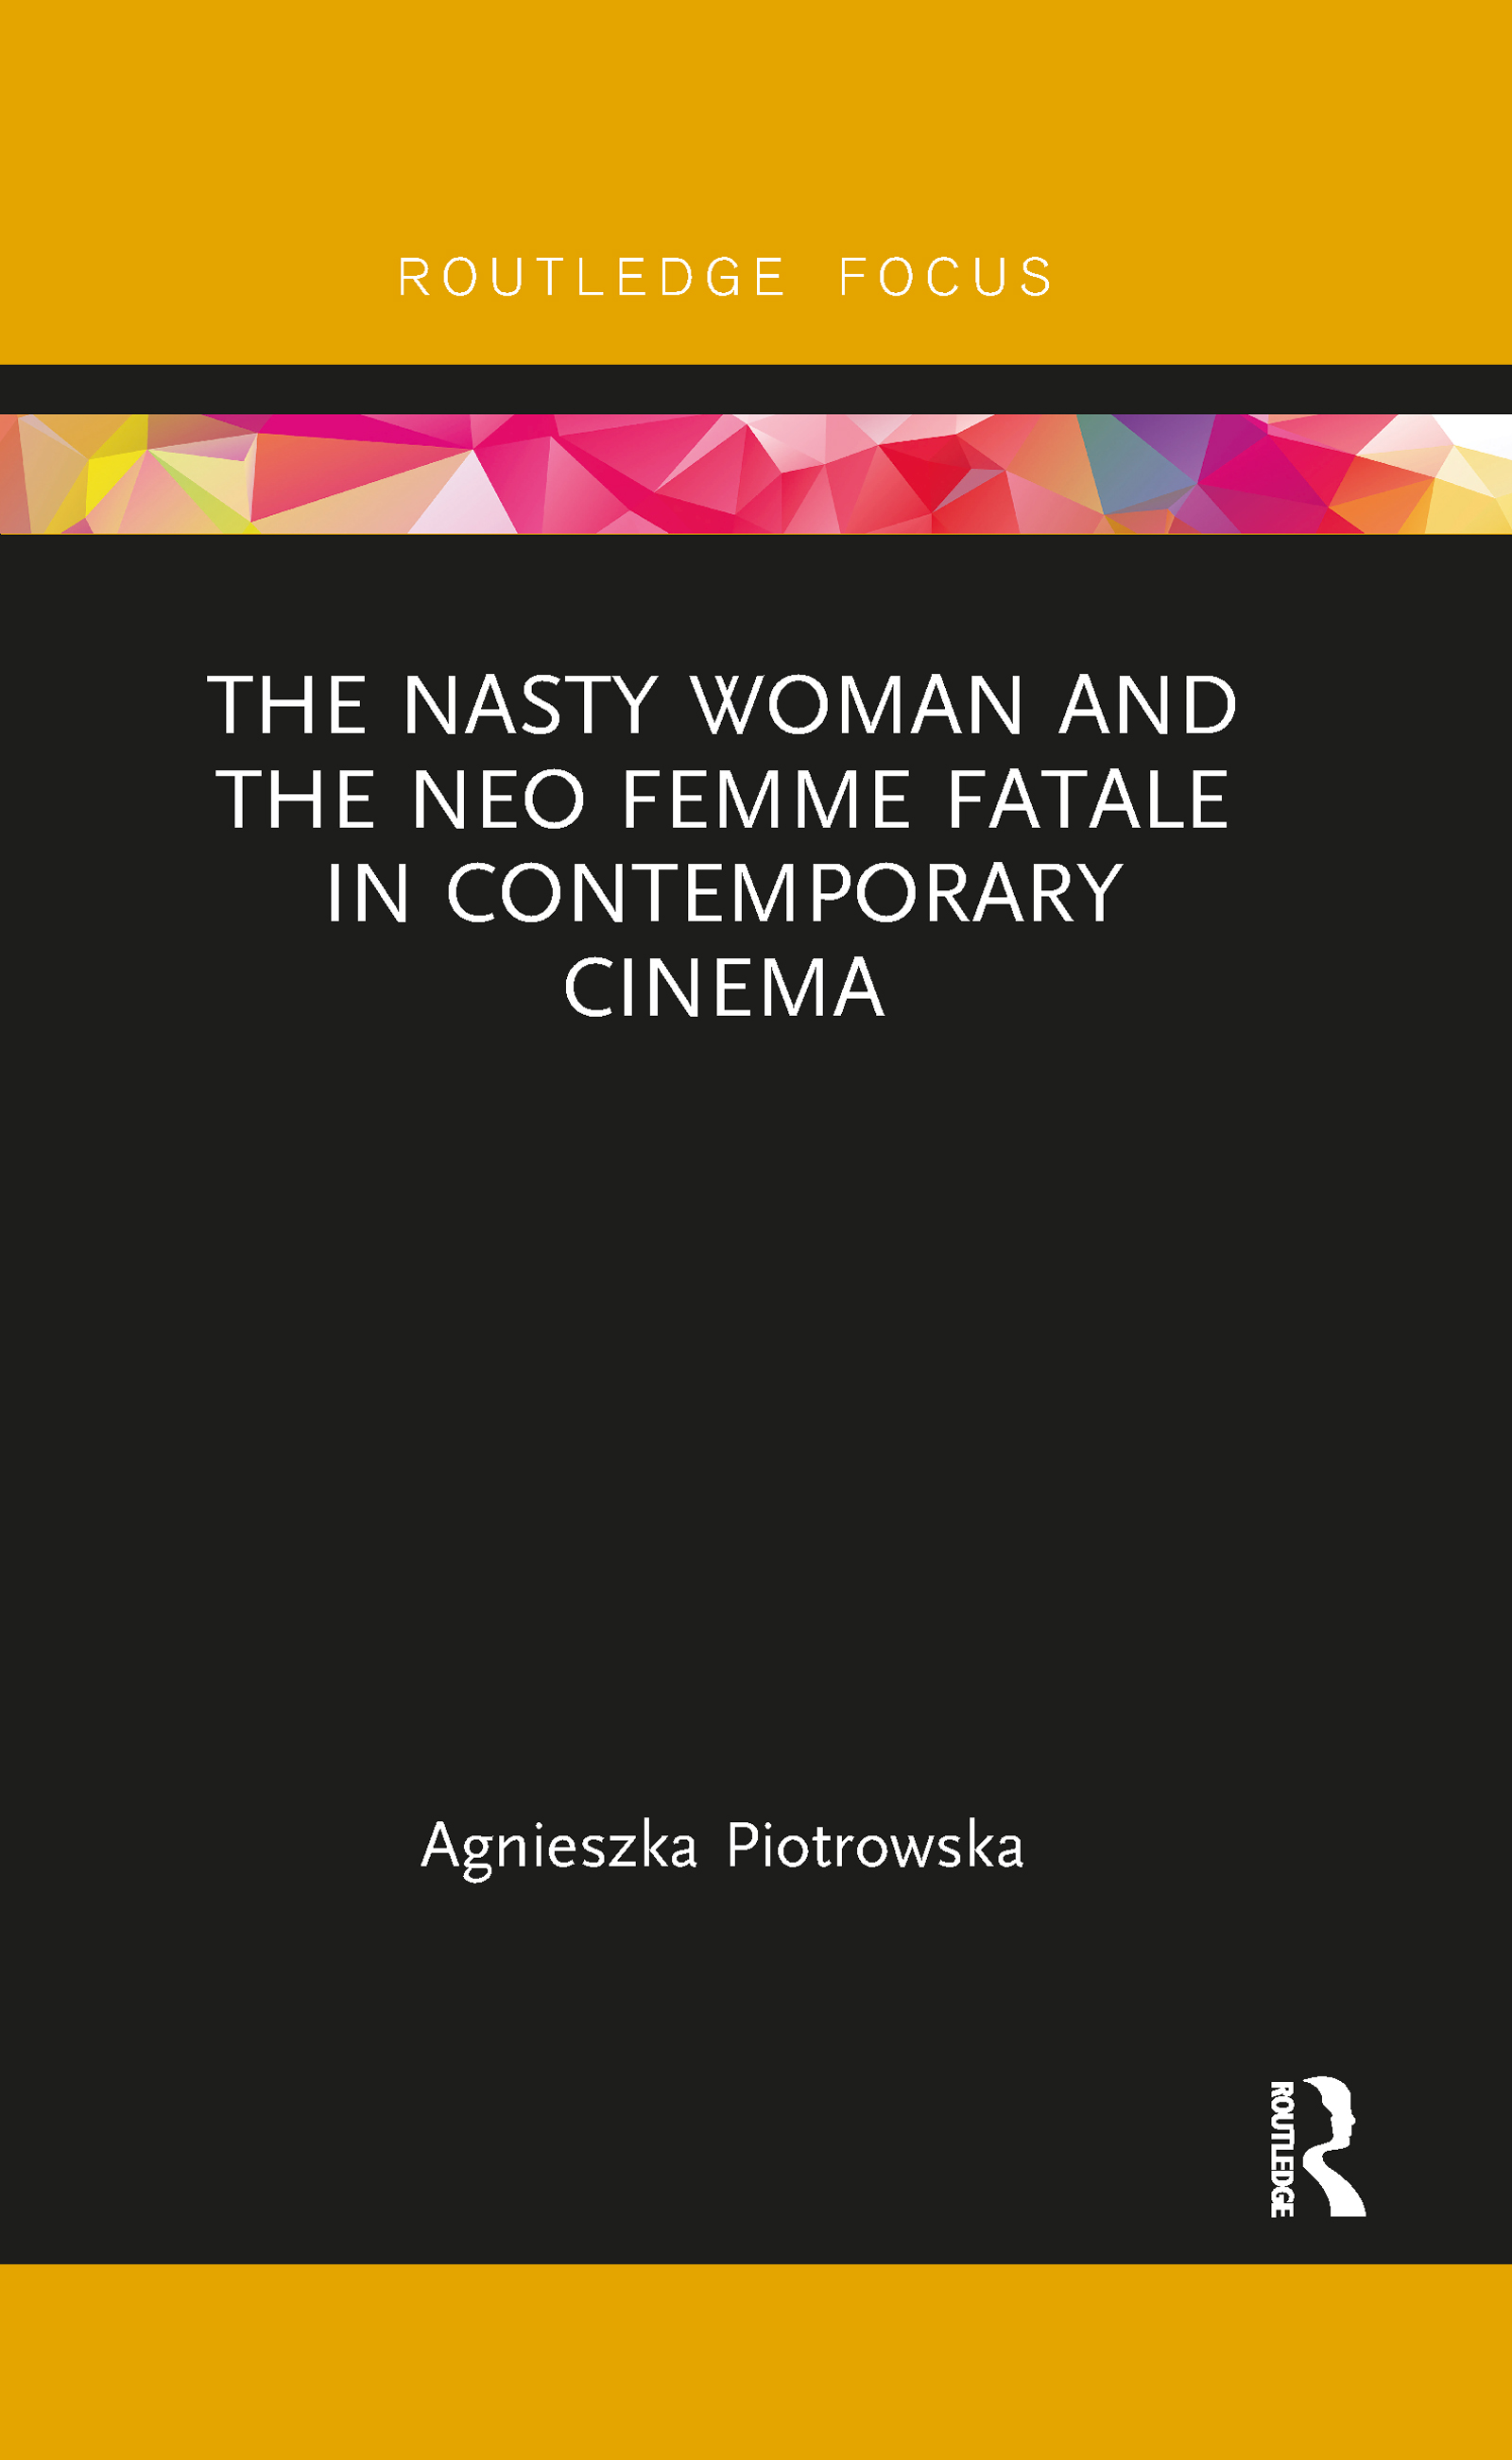 The Nasty Woman and The Neo Femme Fatale in Contemporary Cinema